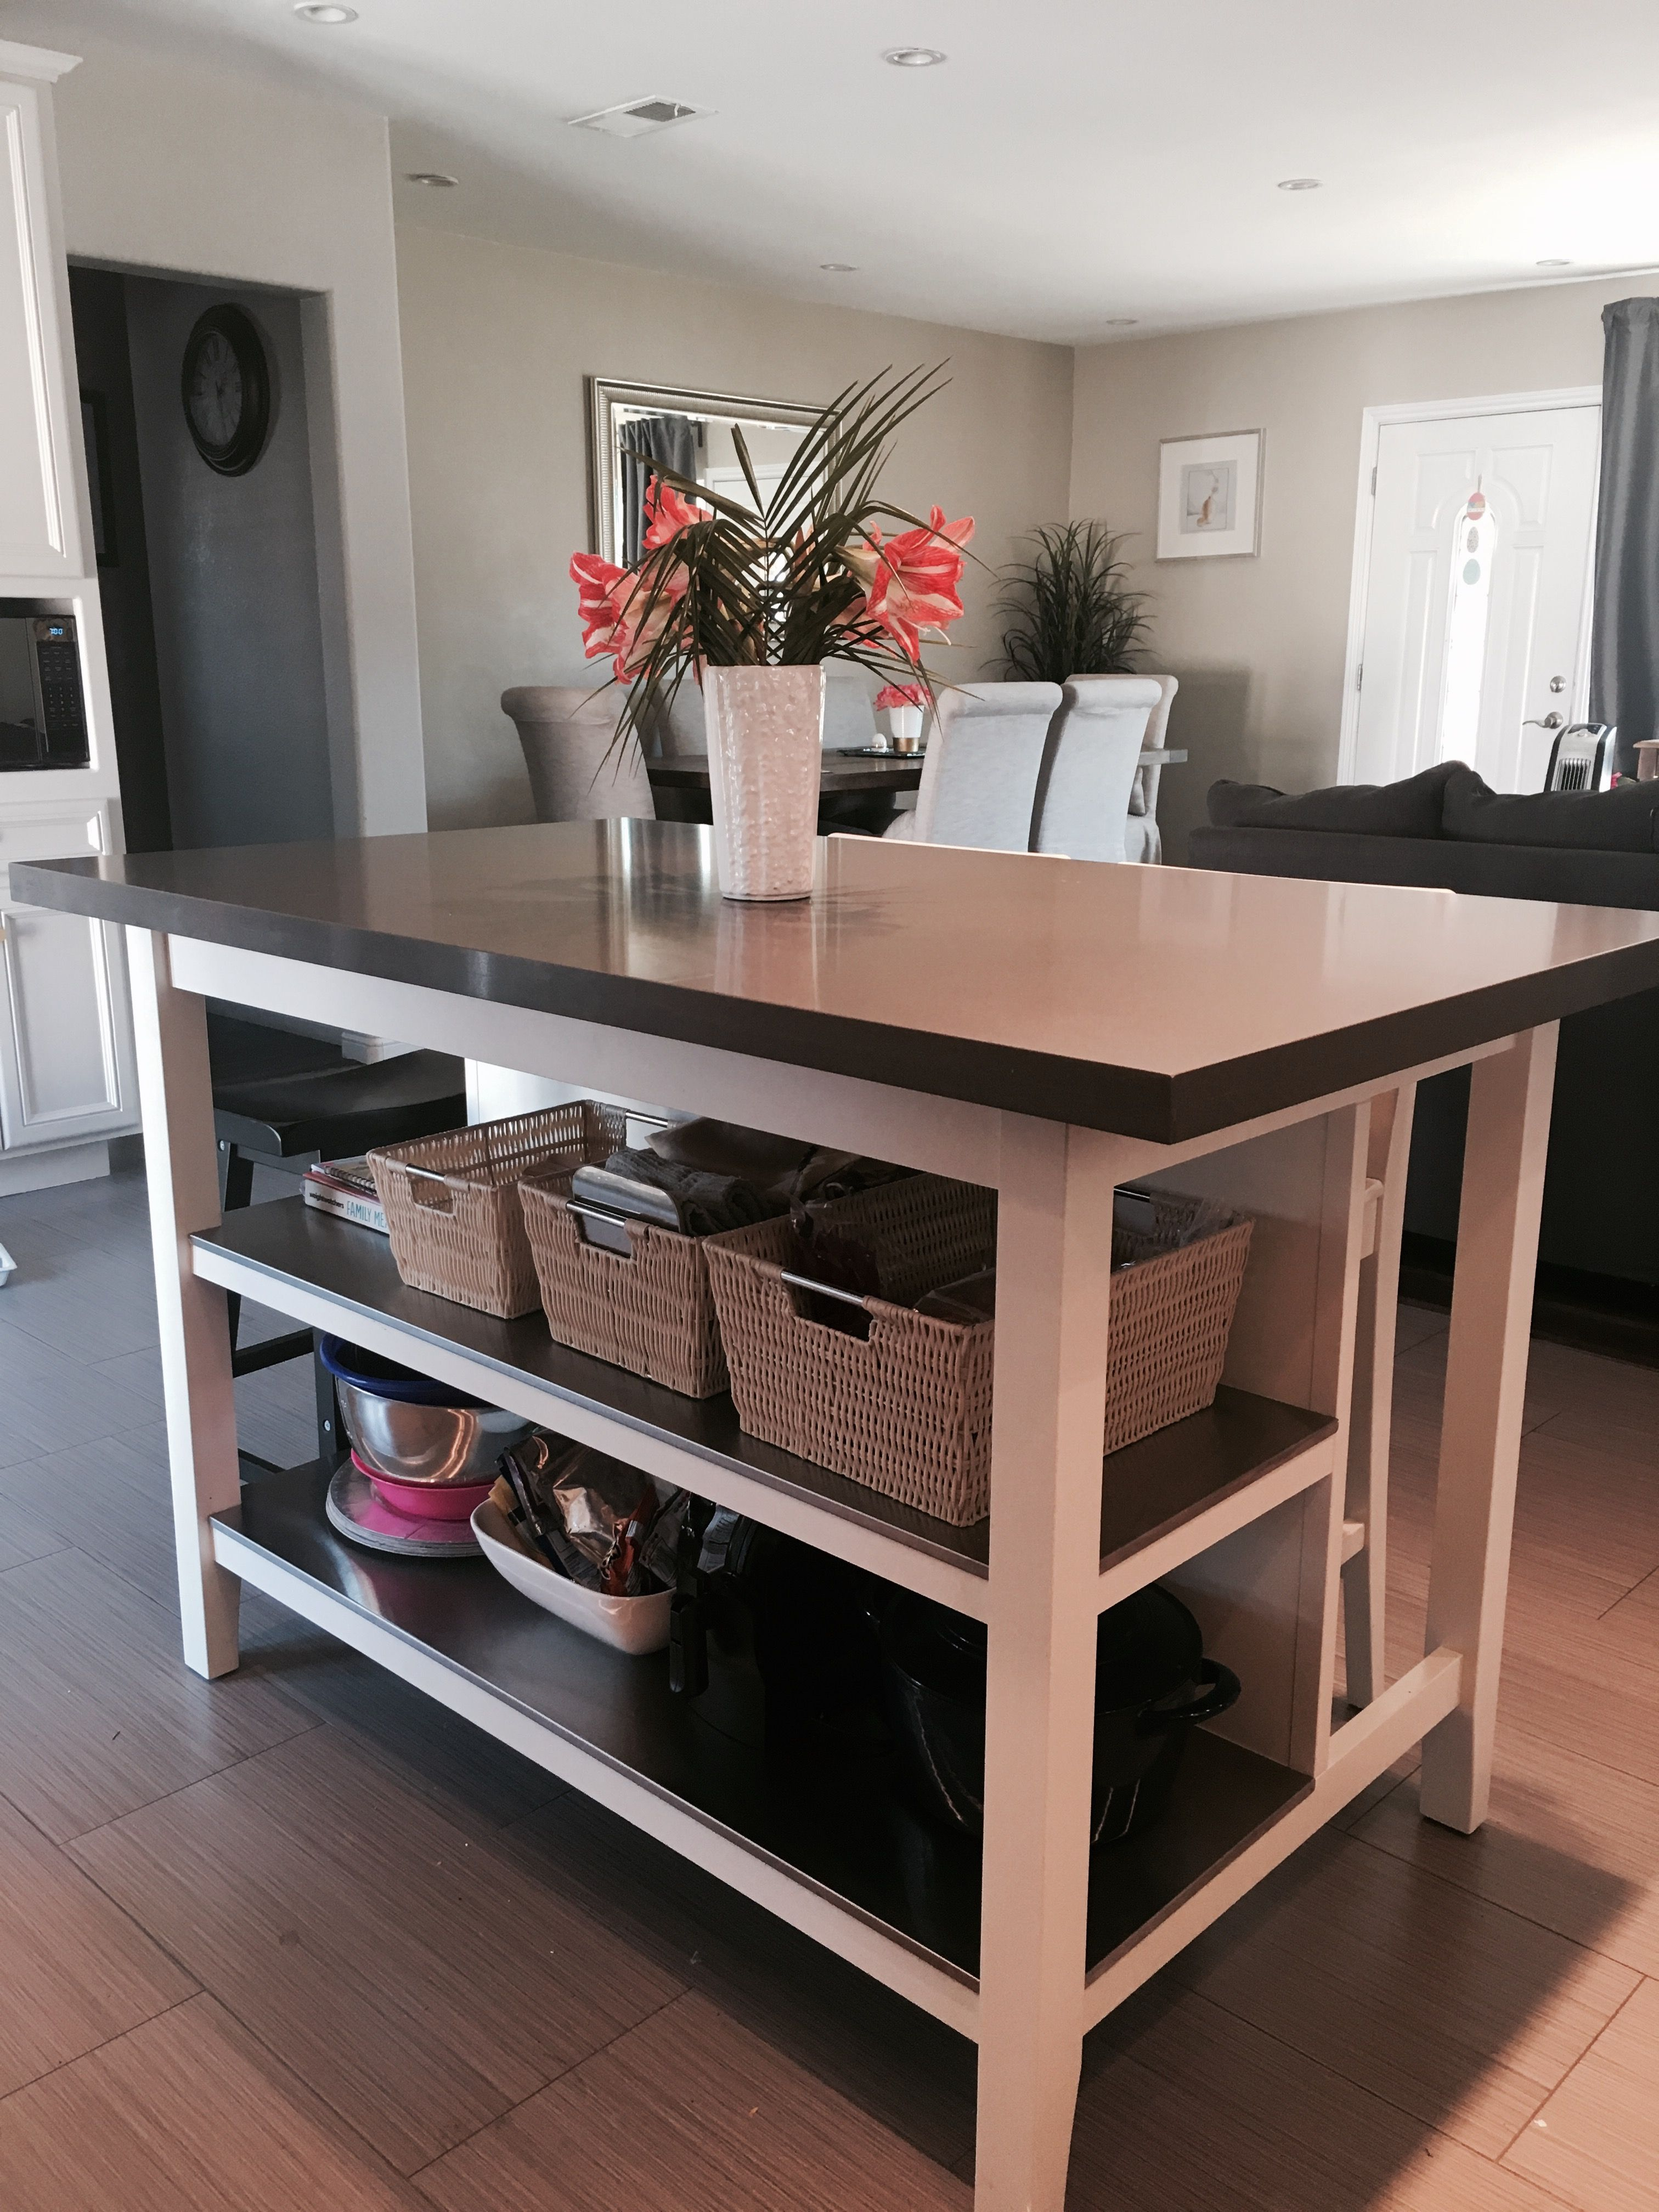 Ikea Stenstorp Kitchen Island Hack. We loved this island but needed ...